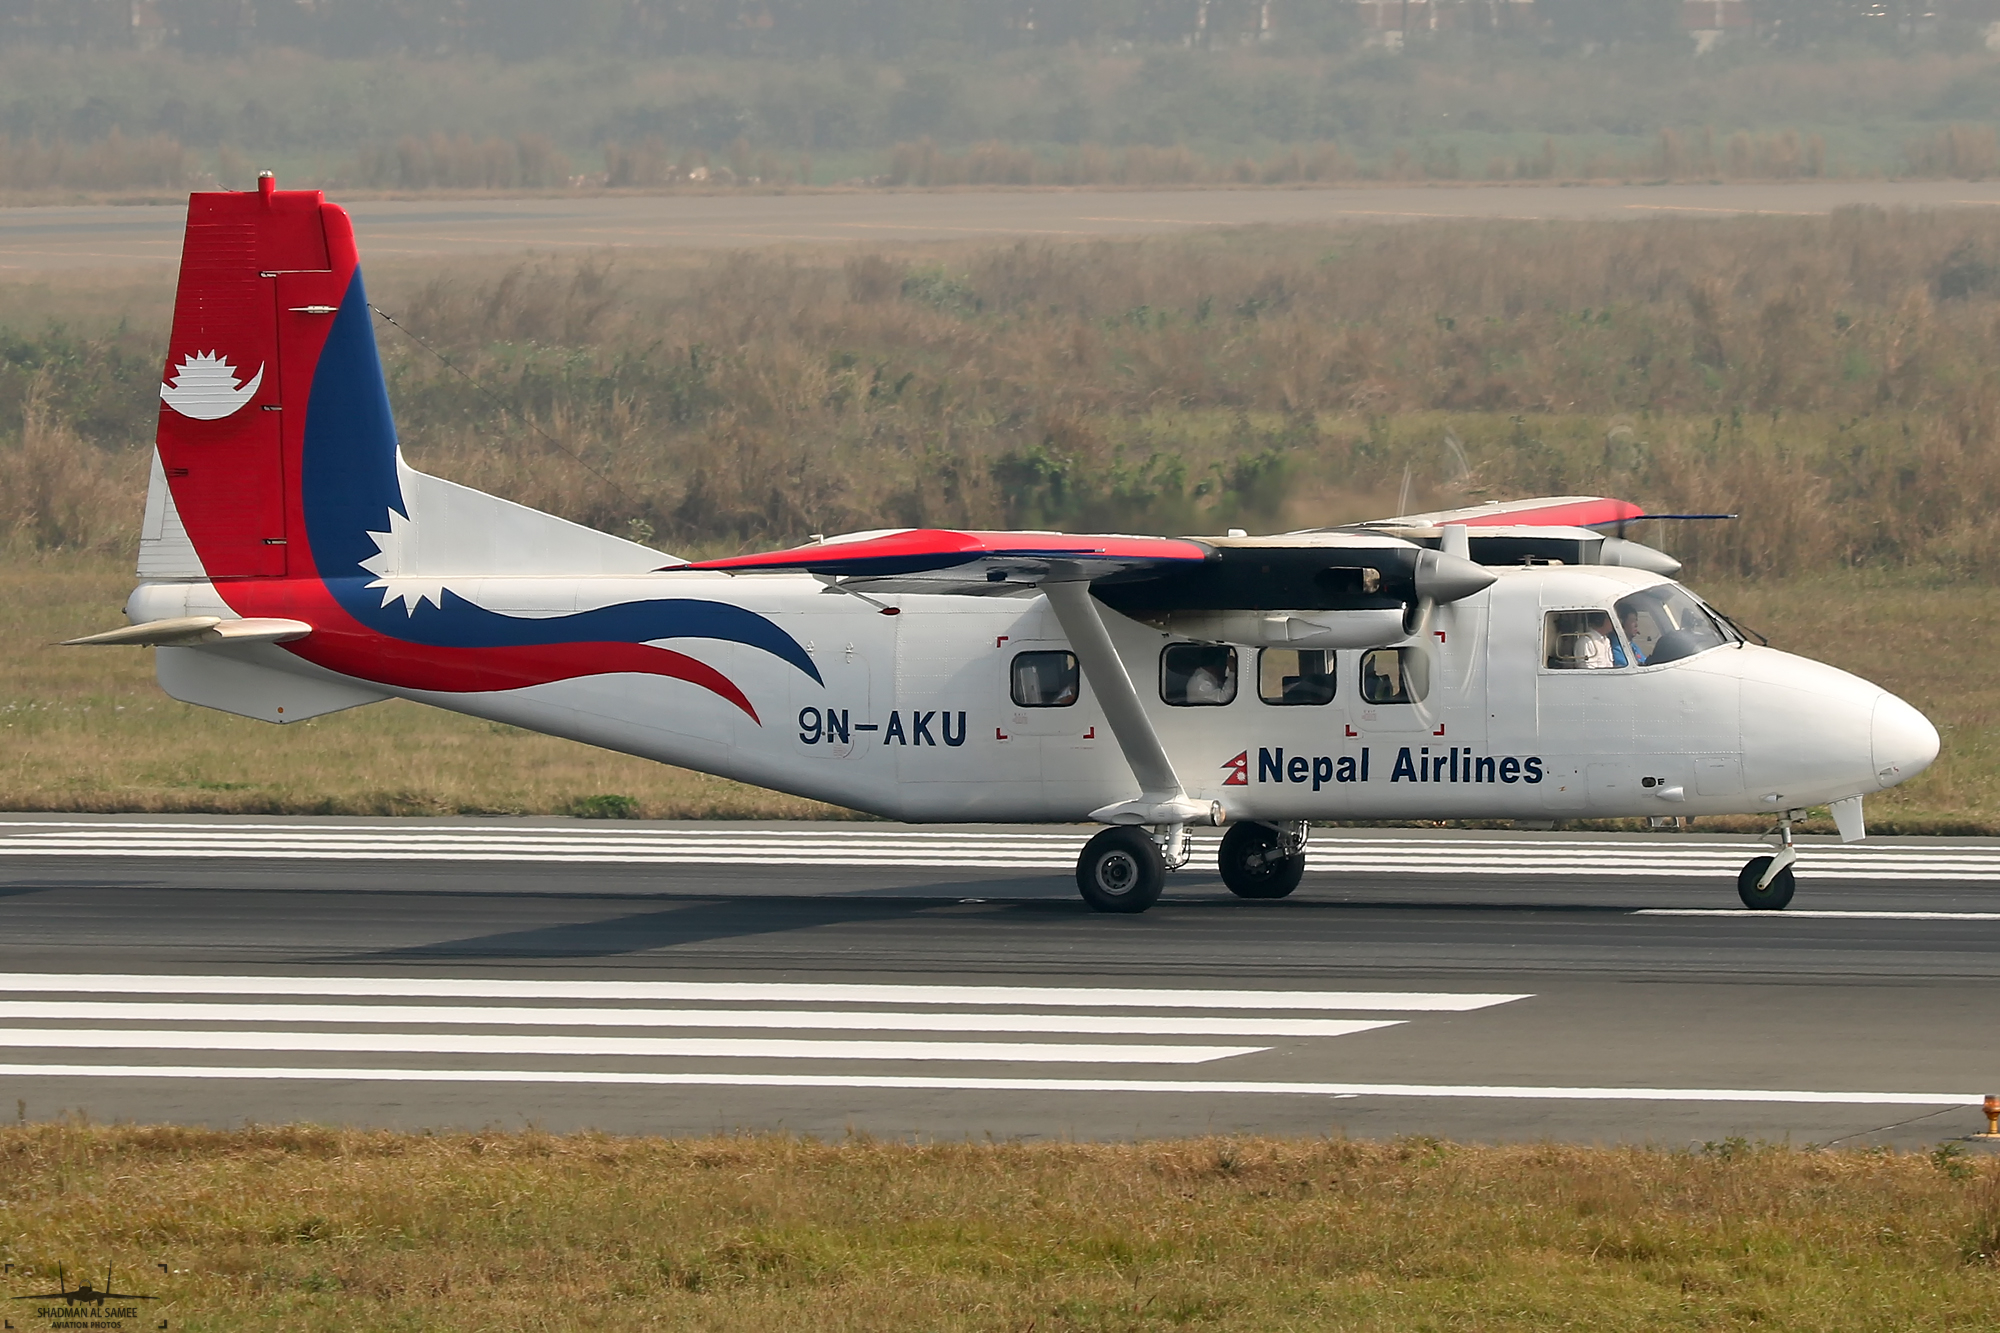 Aircraft of Nepal Airlines Meets Accident at Nepalgunj Airport